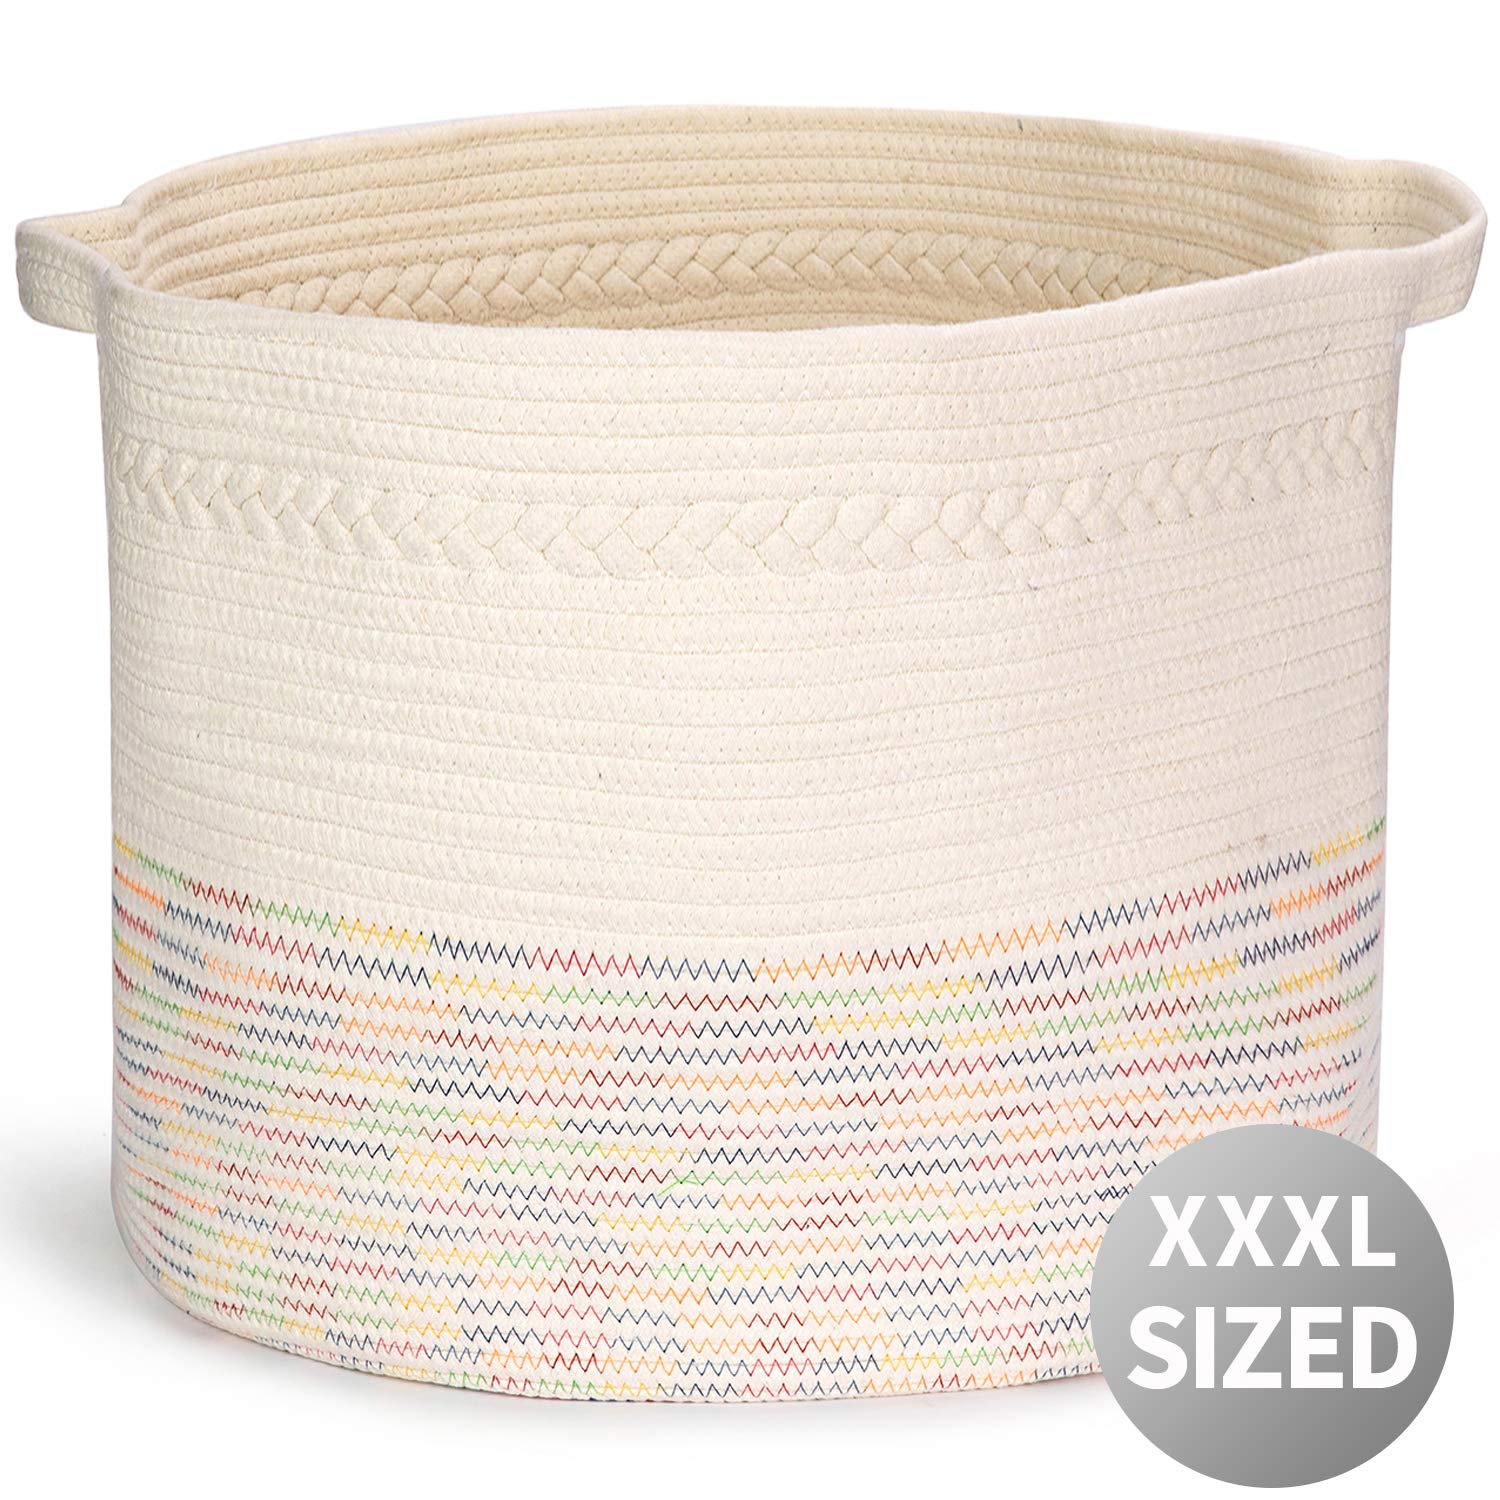 Extra Large Cotton Rope Storage Basket with Handles 22'' x 22'' x 14'' ,Blanket Storage Baskets, Laundry Basket, Toy Storage, Nursery Hamper,Colorful Storage Baskets,Suitable for Warm Home Decor by NEWRX